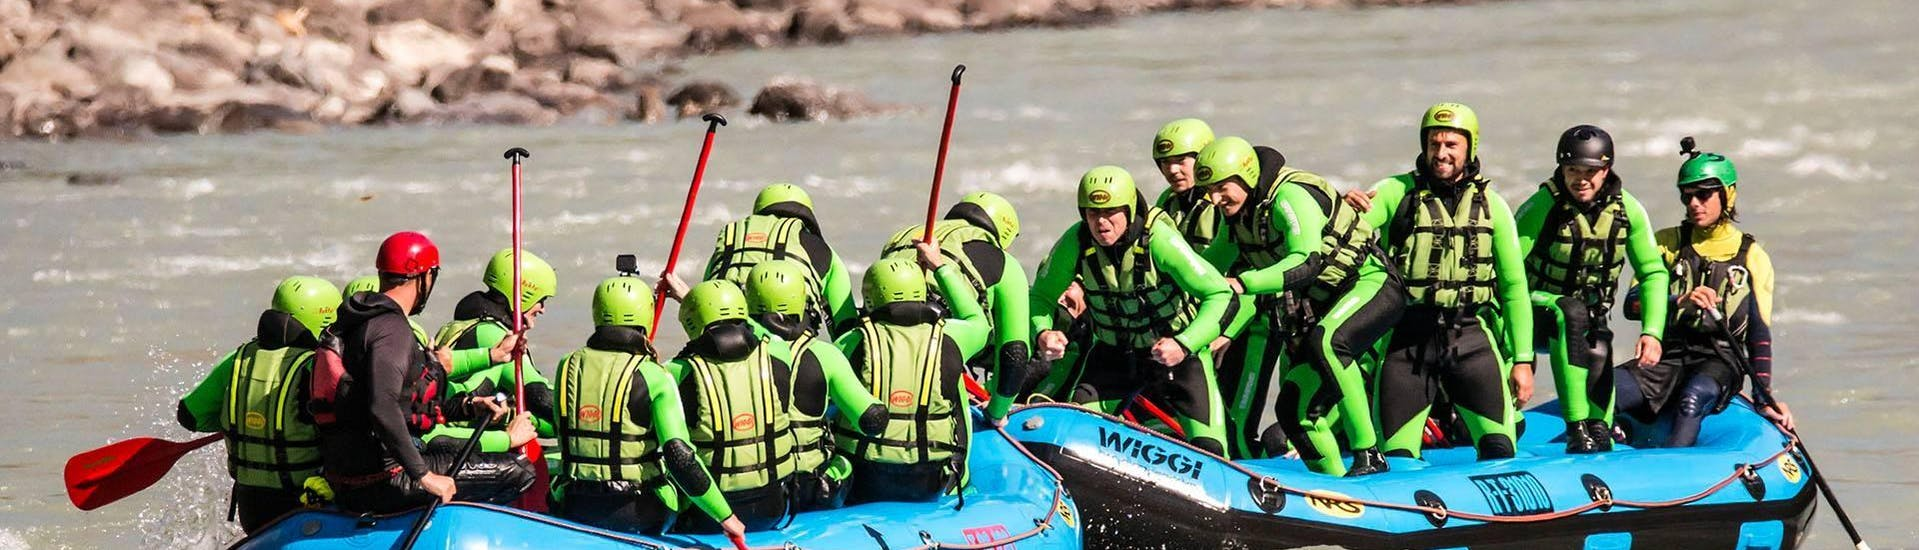 Rafting with the Bachelor in the Imster Schlucht